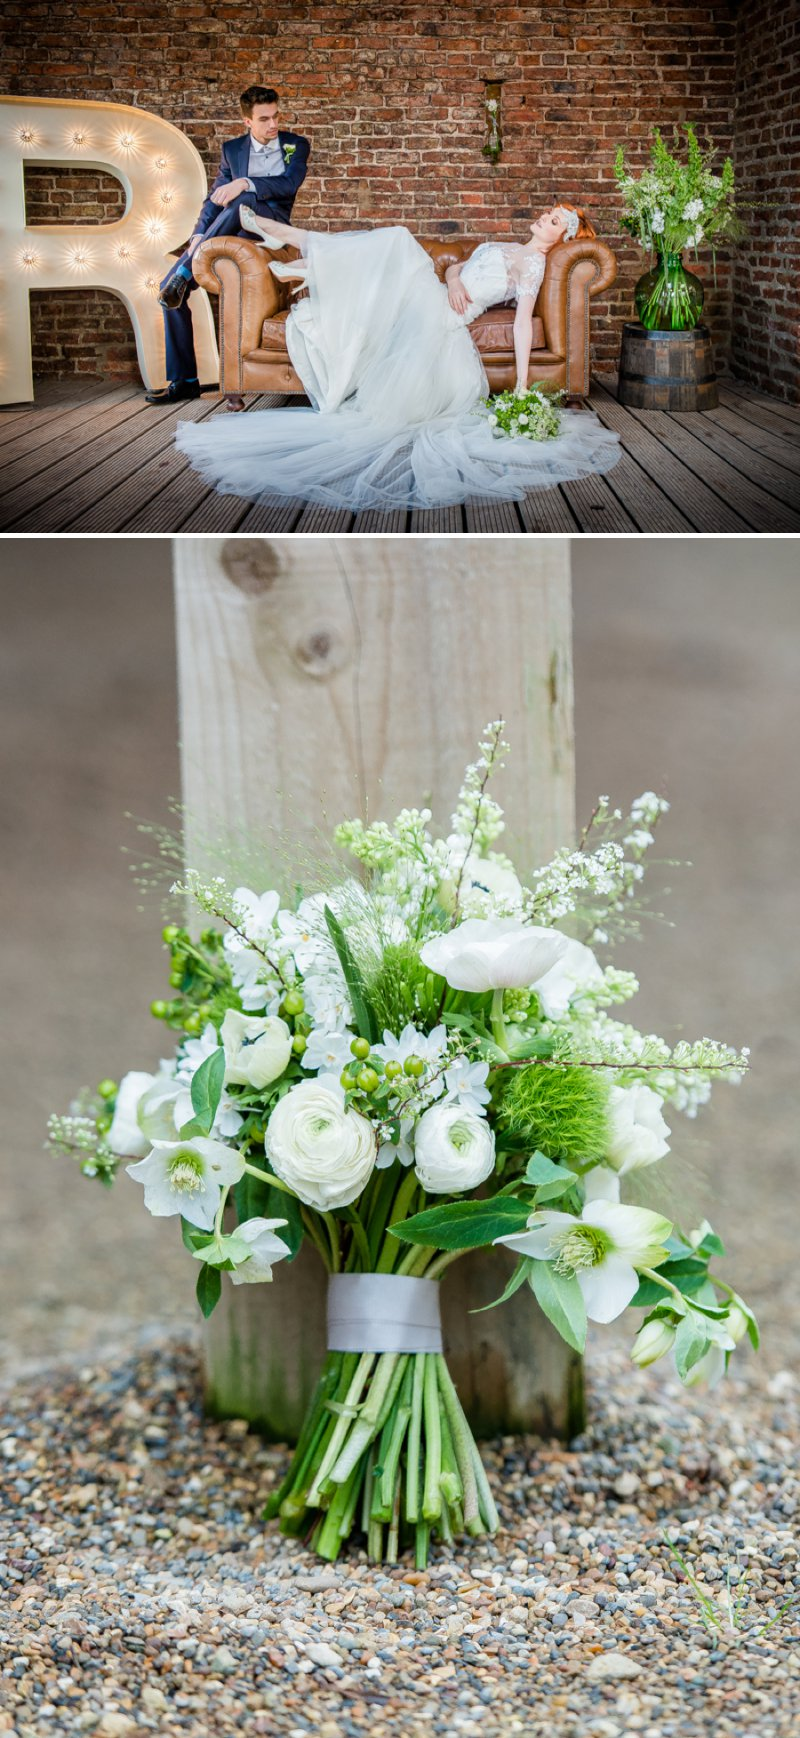 Rustic Glamour Inspired Shoot At York Maze With An Apple Green Colour Scheme Lots of Green Foliage And White Flowers With Images By Dominic Wright Photography 4